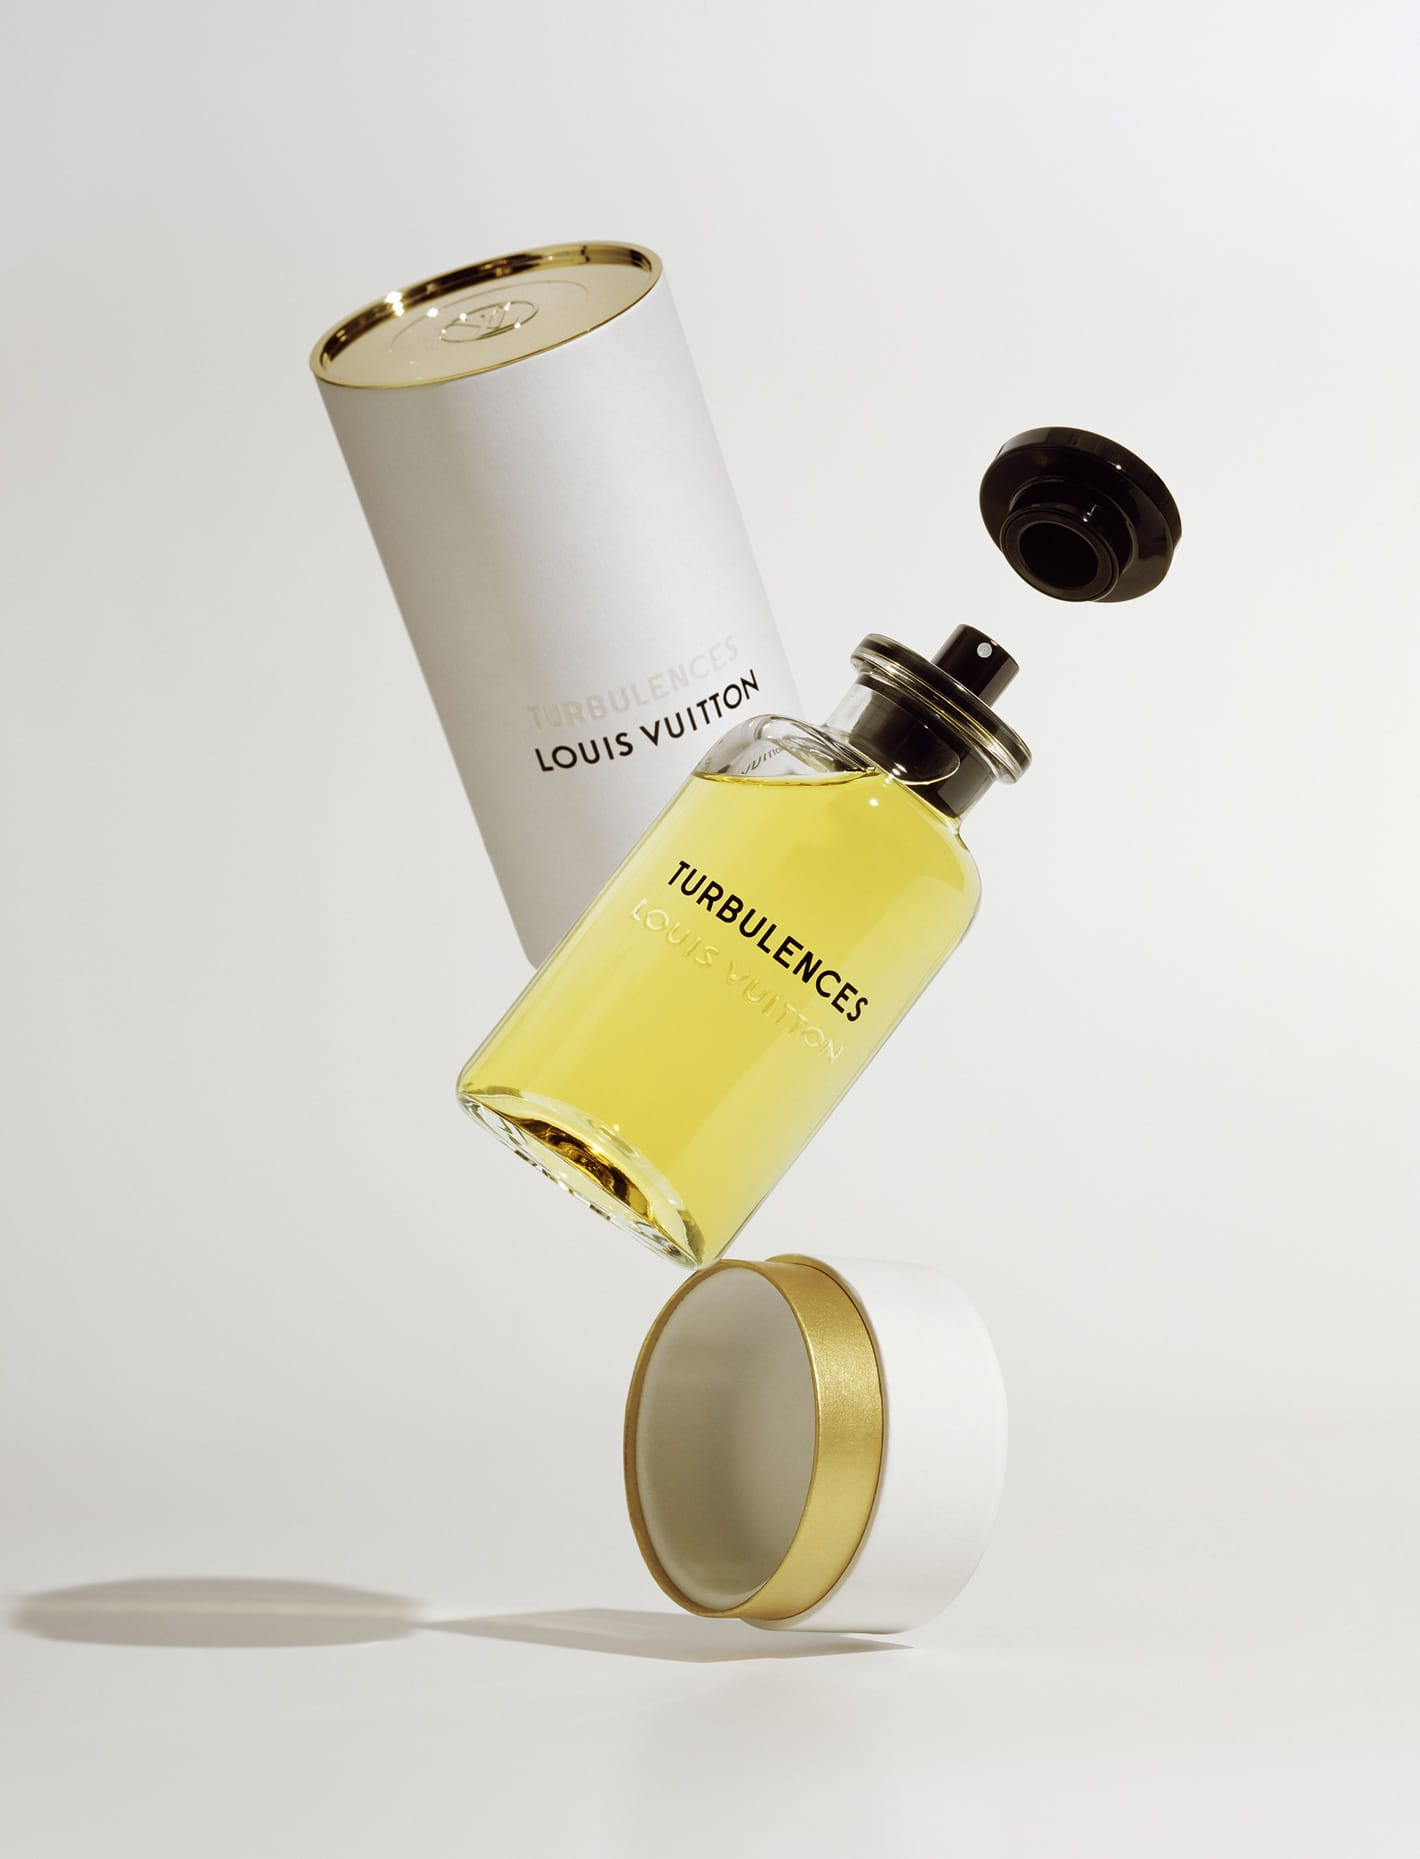 Louis_Vuitton_Les_Fragances_Turbulence_The_Luxury_Trends